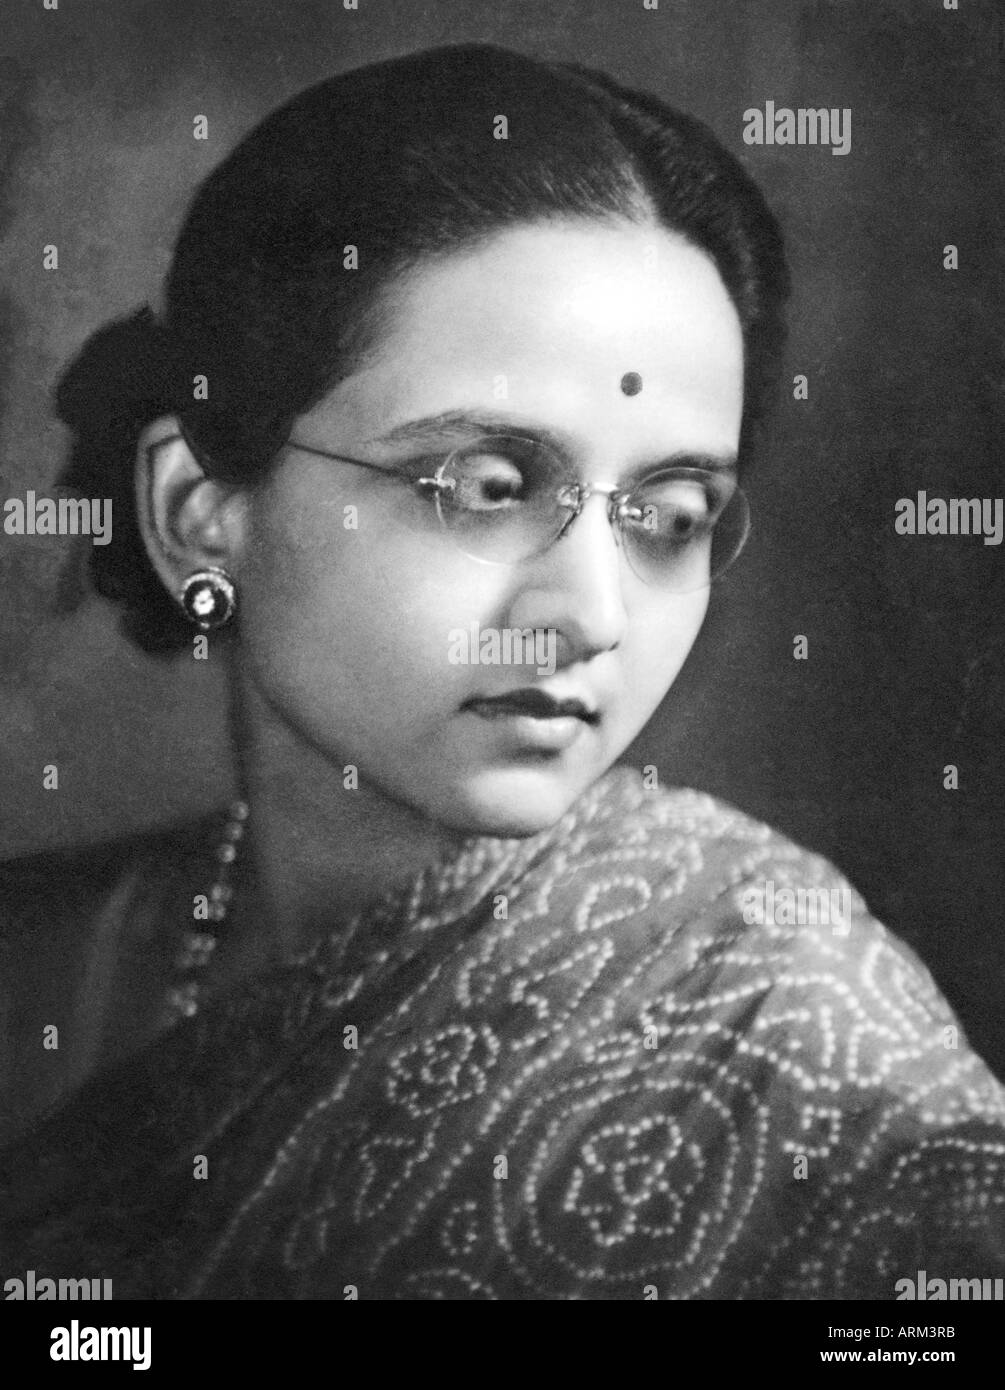 Vrb101305 Indian Woman With Specs And Bindi In Saree Portrait In